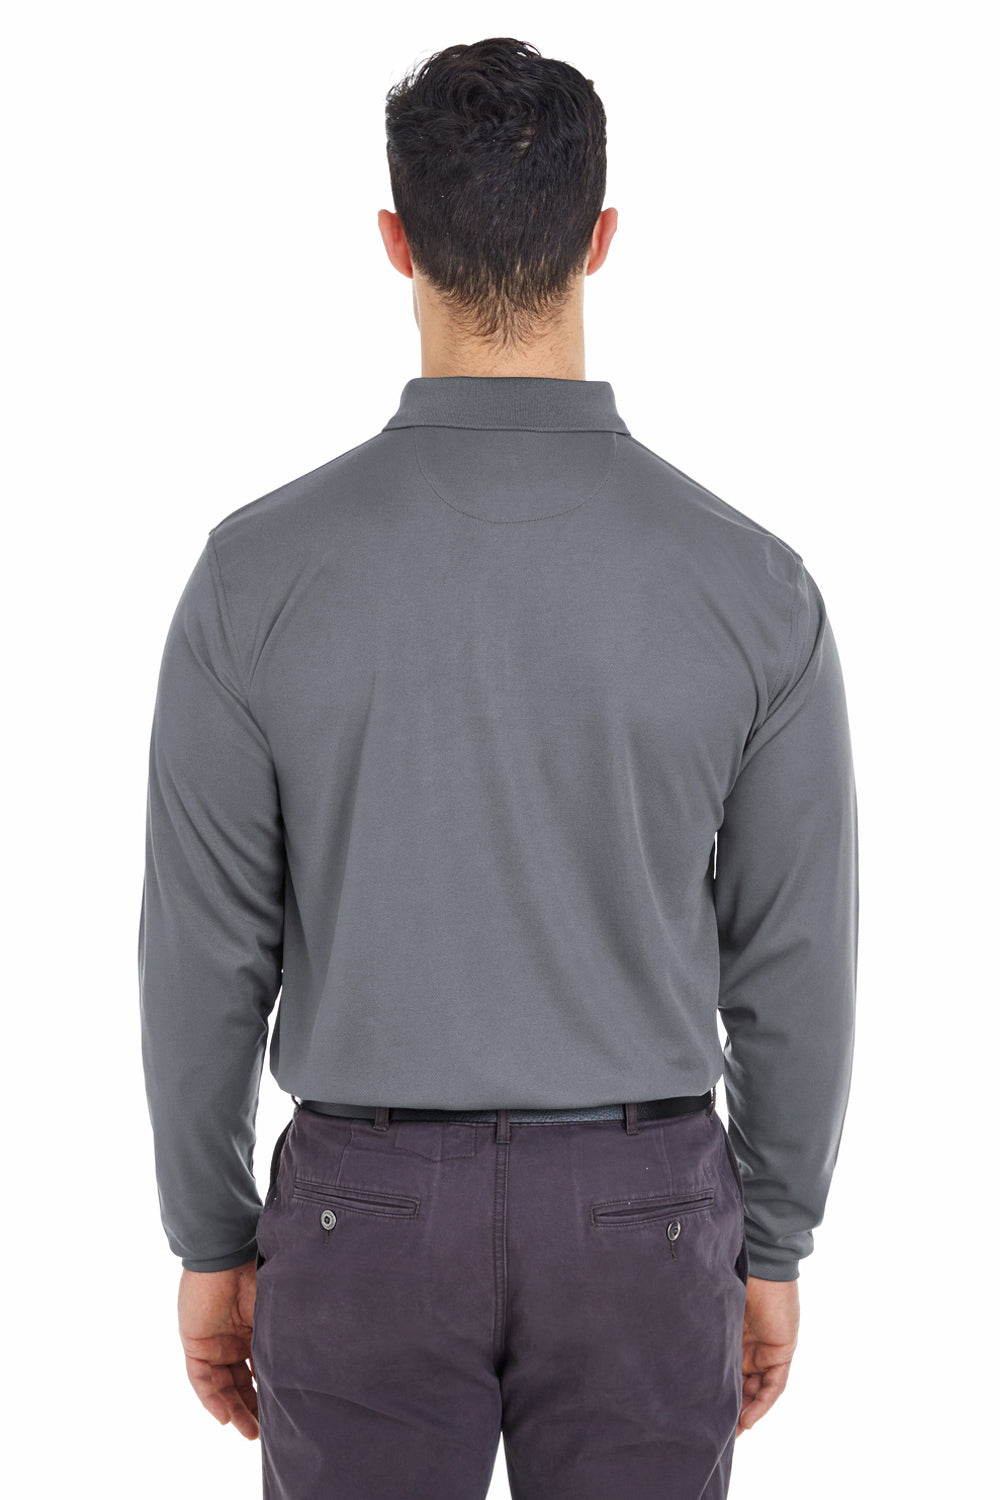 UltraClub 8210LS Mens Cool & Dry Moisture Wicking Long Sleeve Polo Shirt Charcoal Grey Back